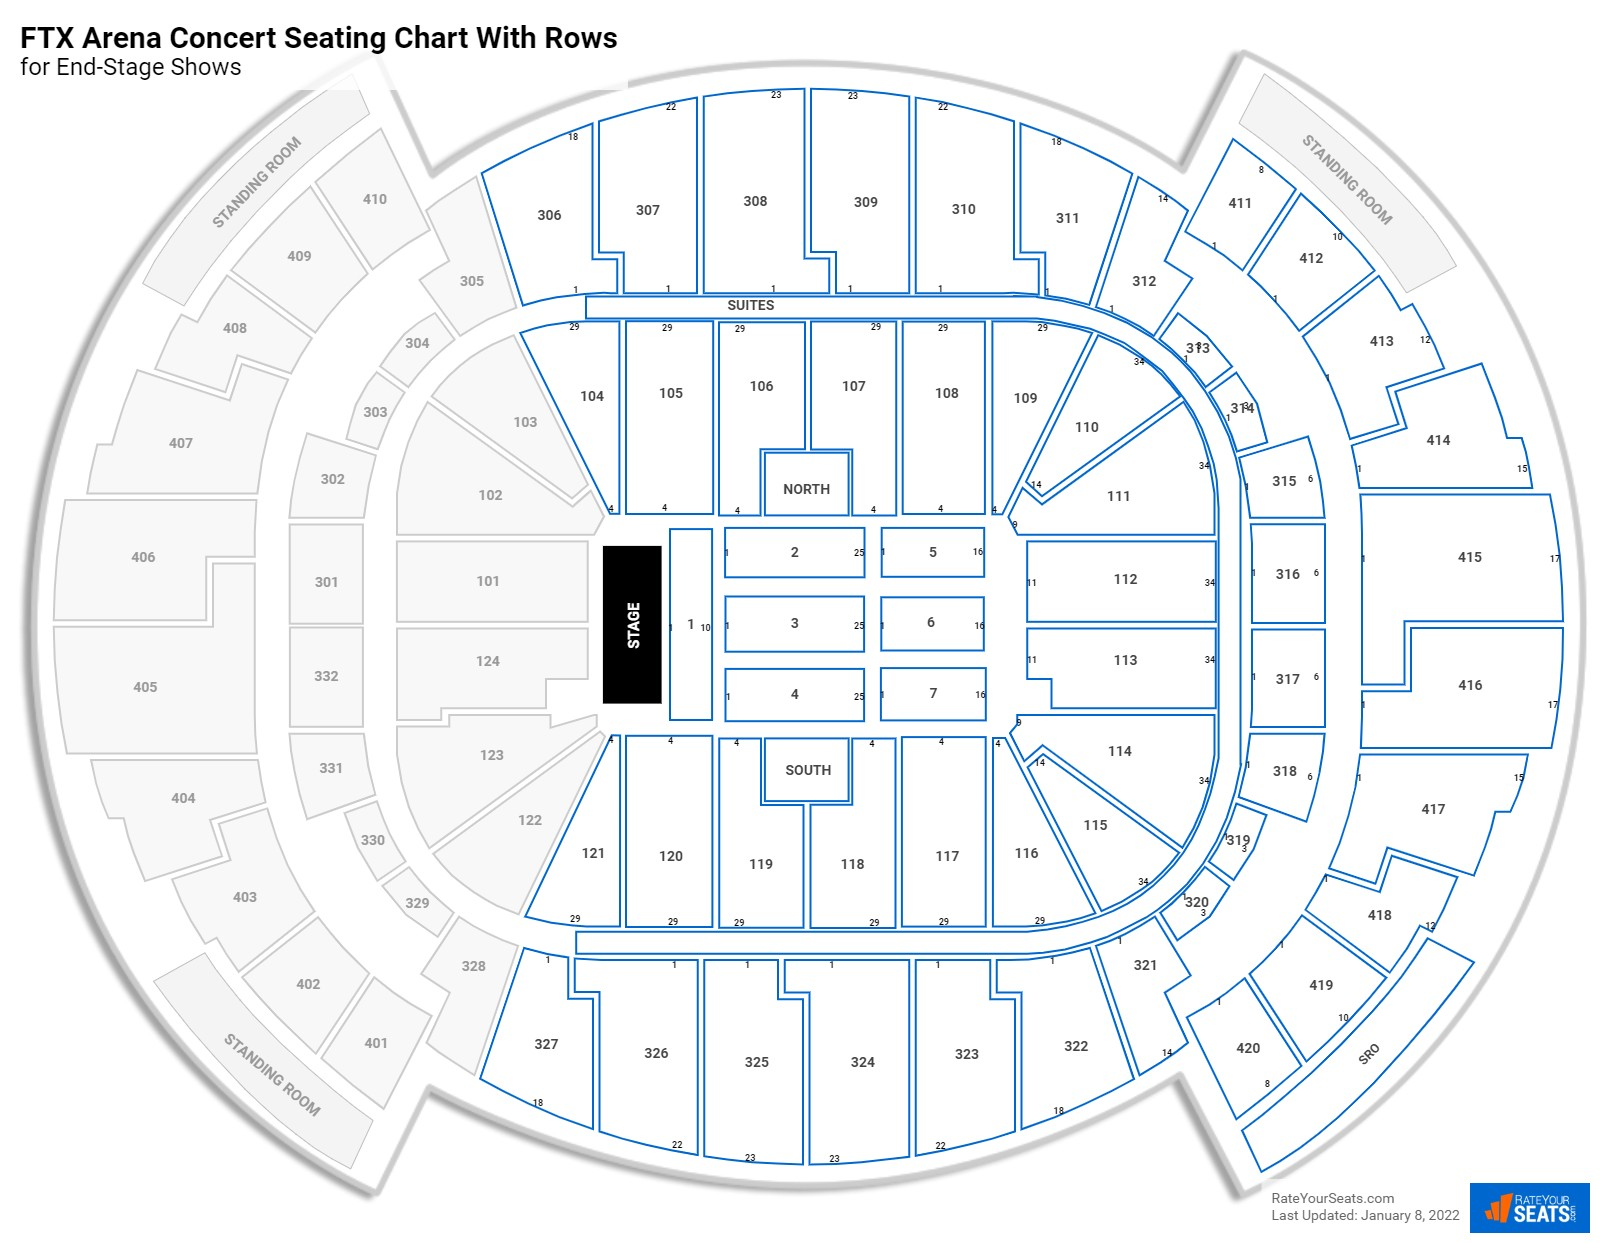 AmericanAirlines Arena seating chart with rows concert